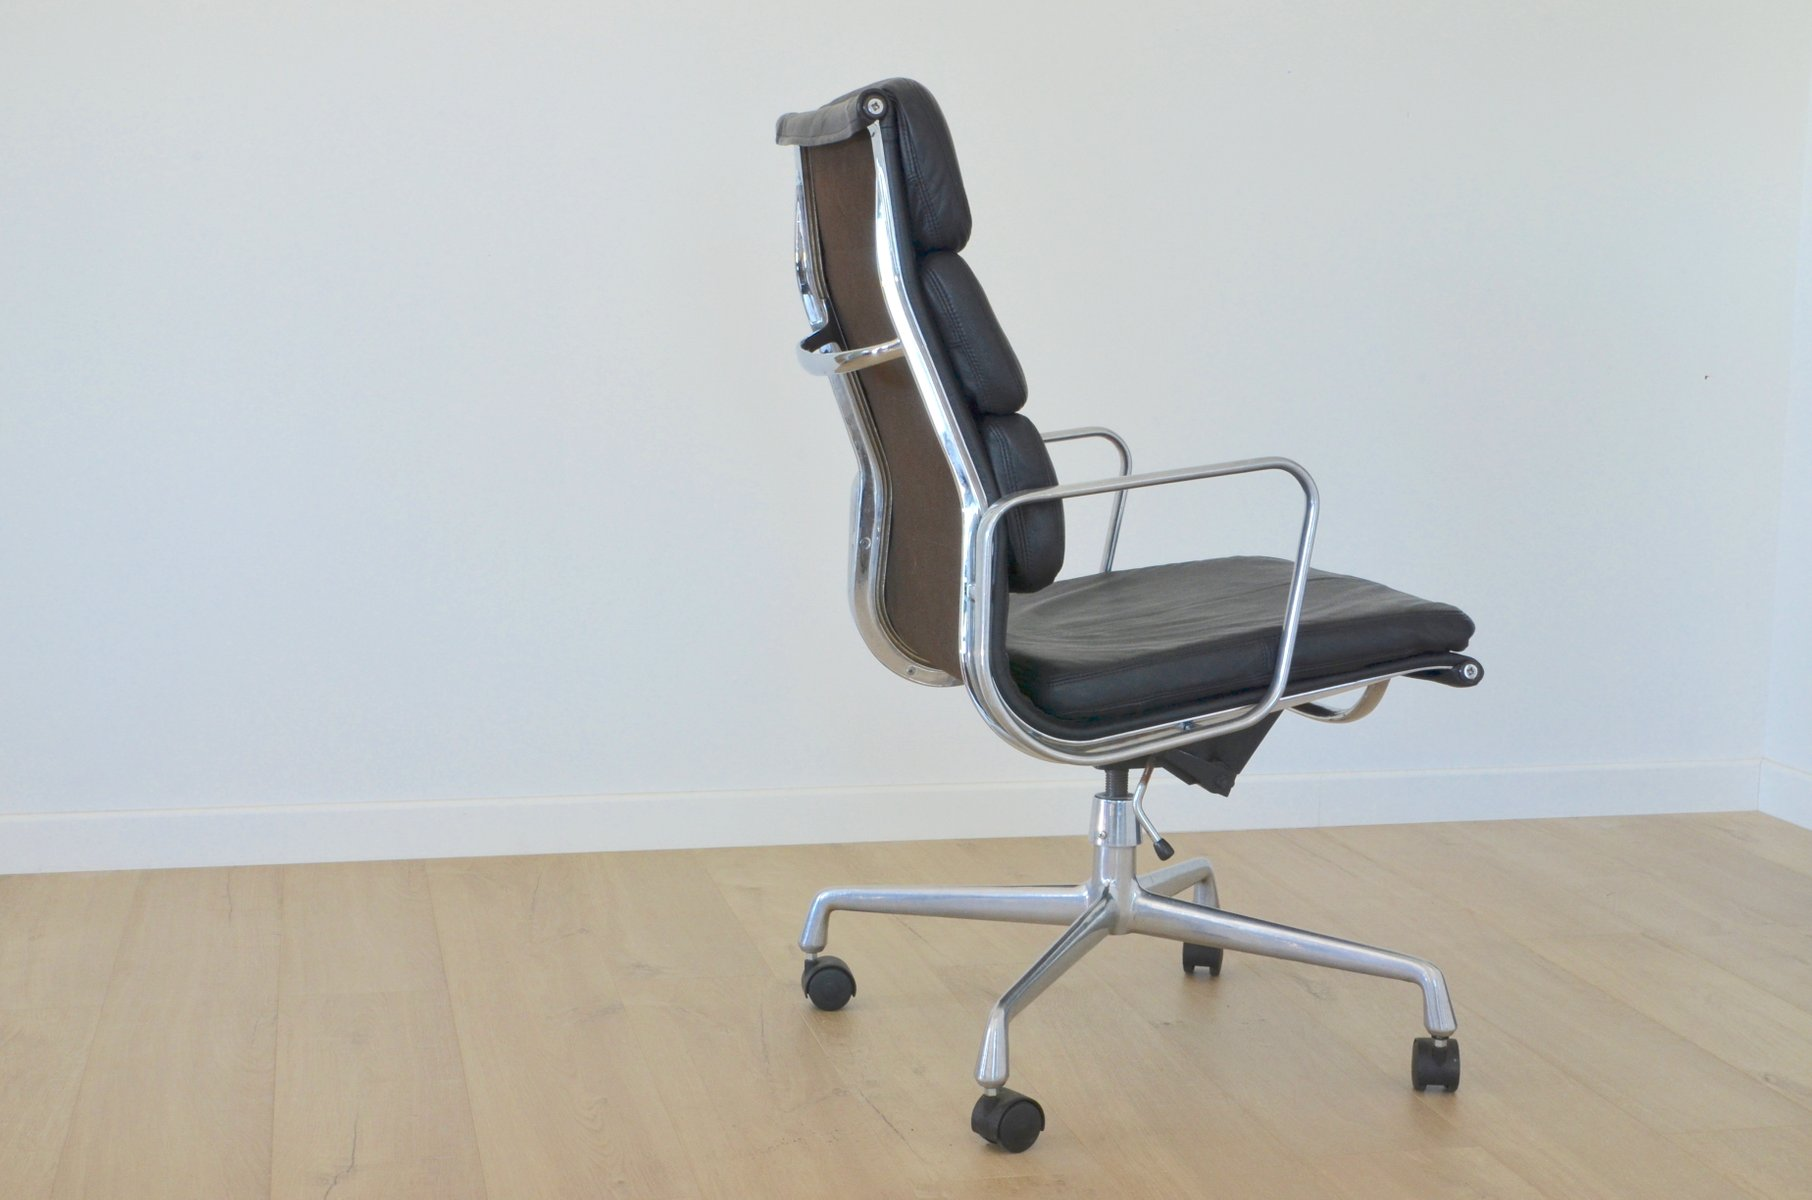 vintage ea219 office chair by charles eames for herman miller for sale